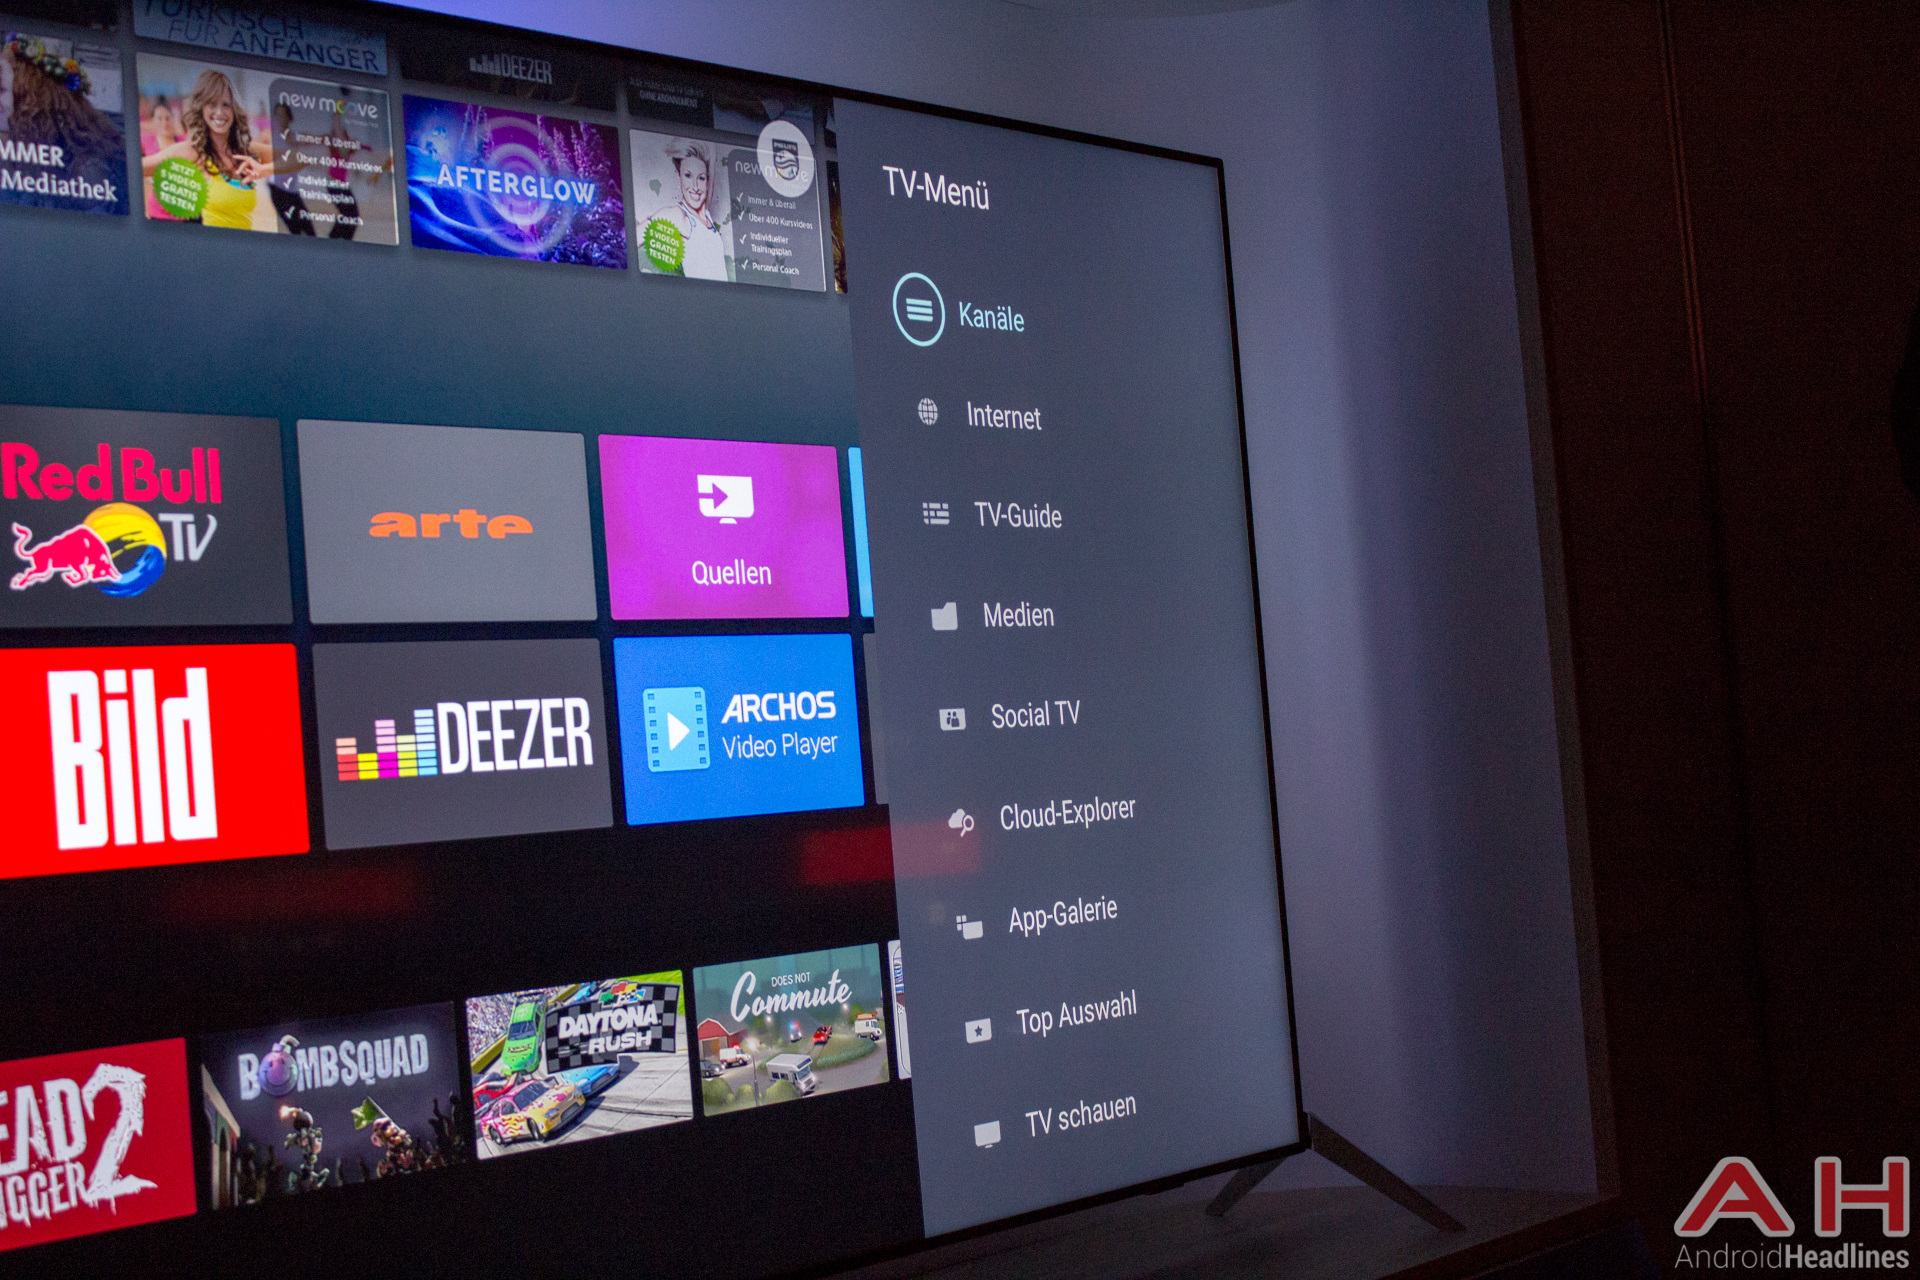 Philips 9600 Android TV AH 5